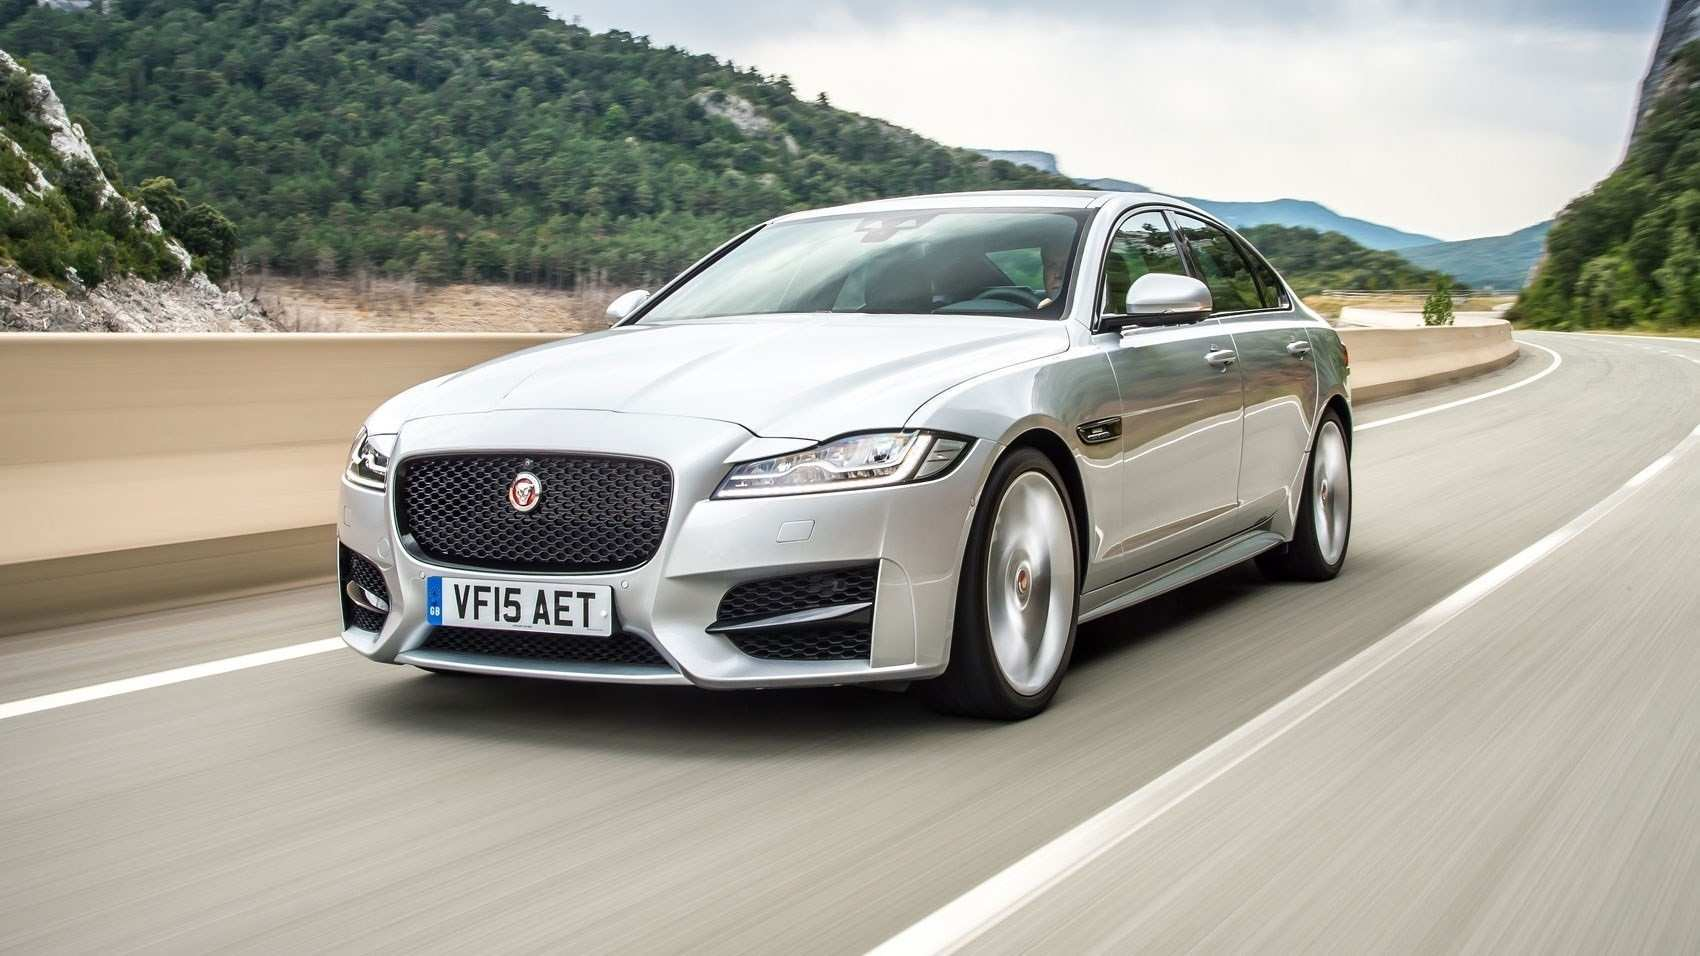 45 Best Review 2020 Jaguar Xj Launch Date Spy Shoot with 2020 Jaguar Xj Launch Date